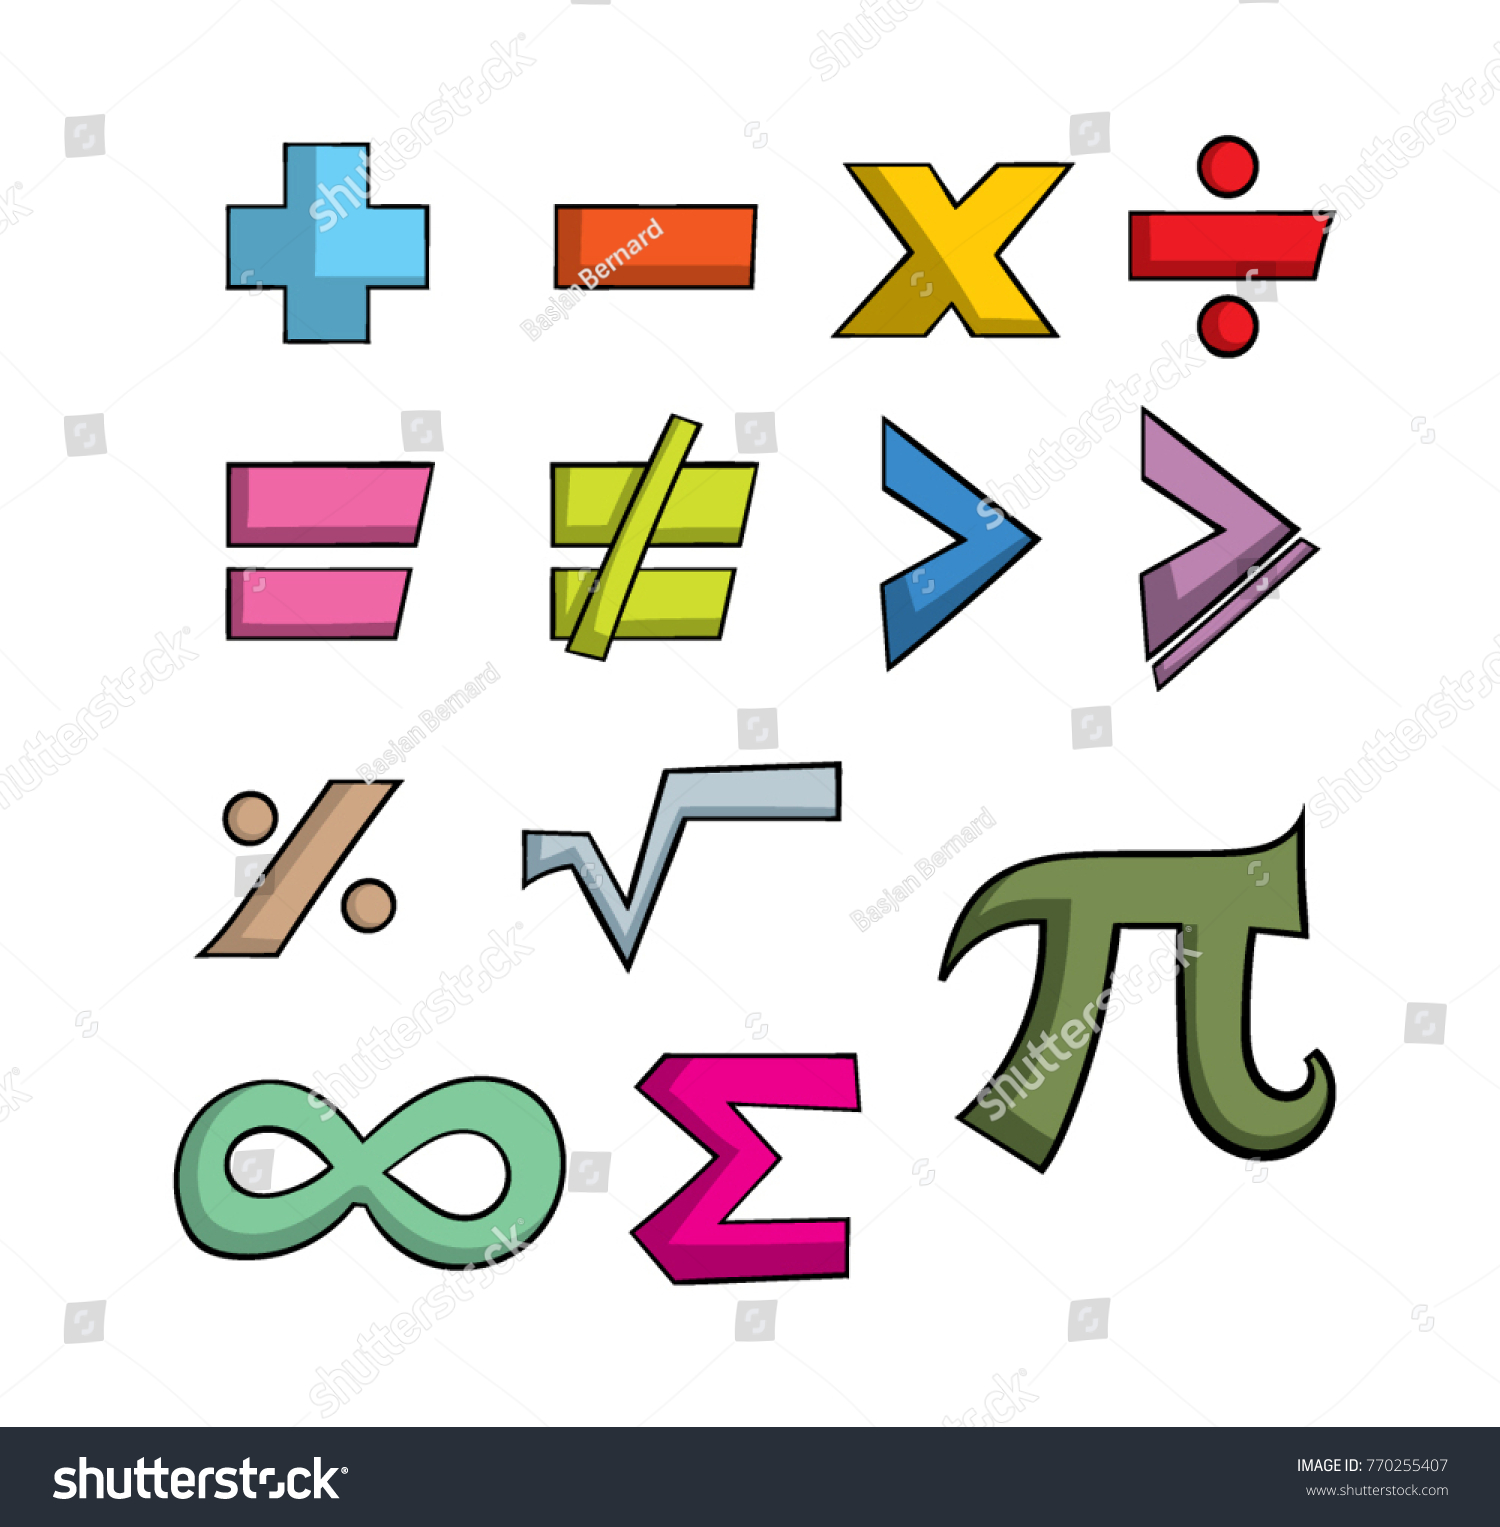 Colorful cartoon style mathematical symbols stock vector 770255407 colorful cartoon style mathematical symbols biocorpaavc Image collections